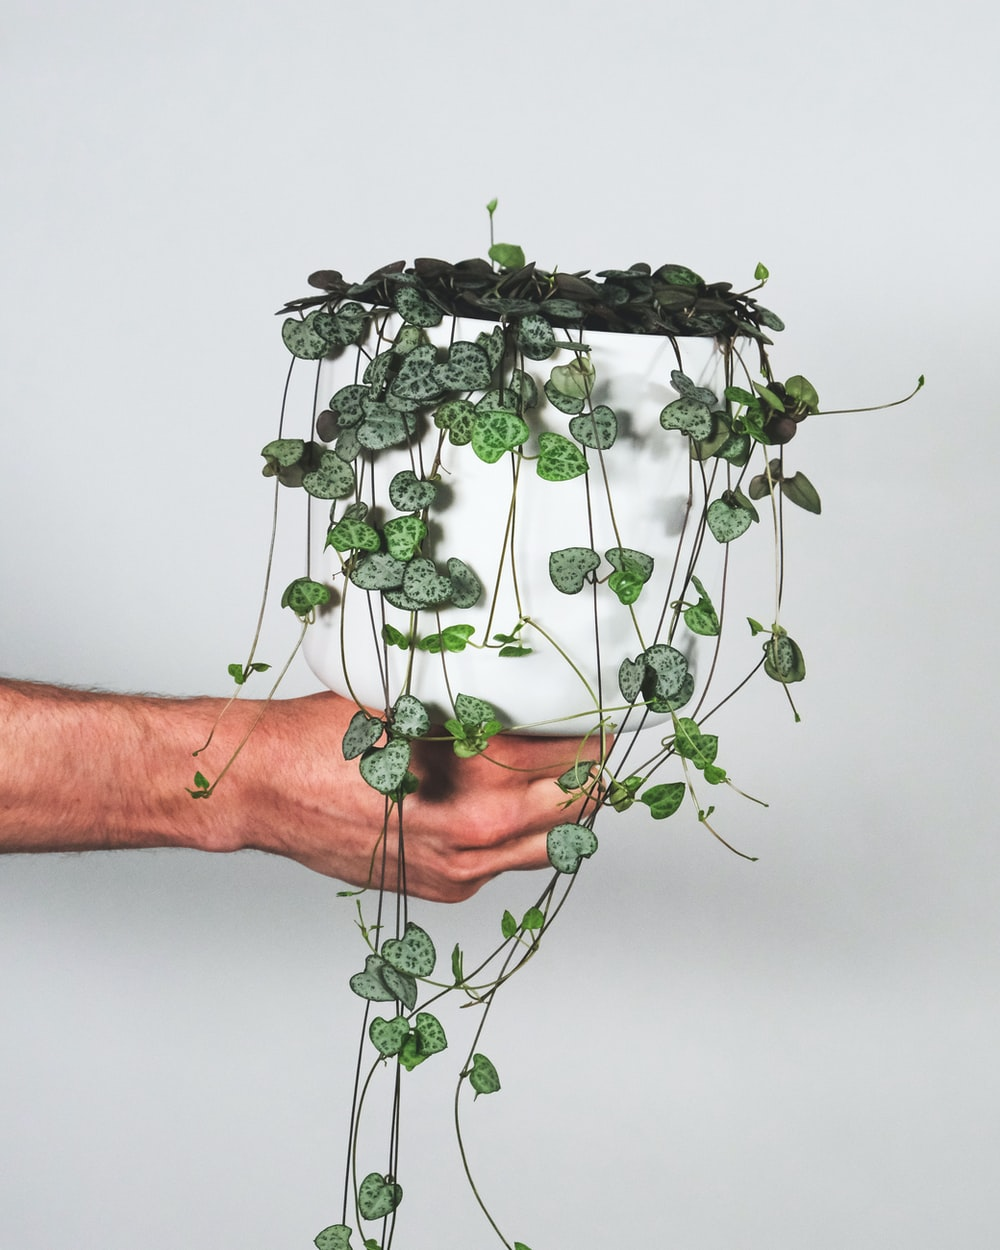 green plant on persons hand